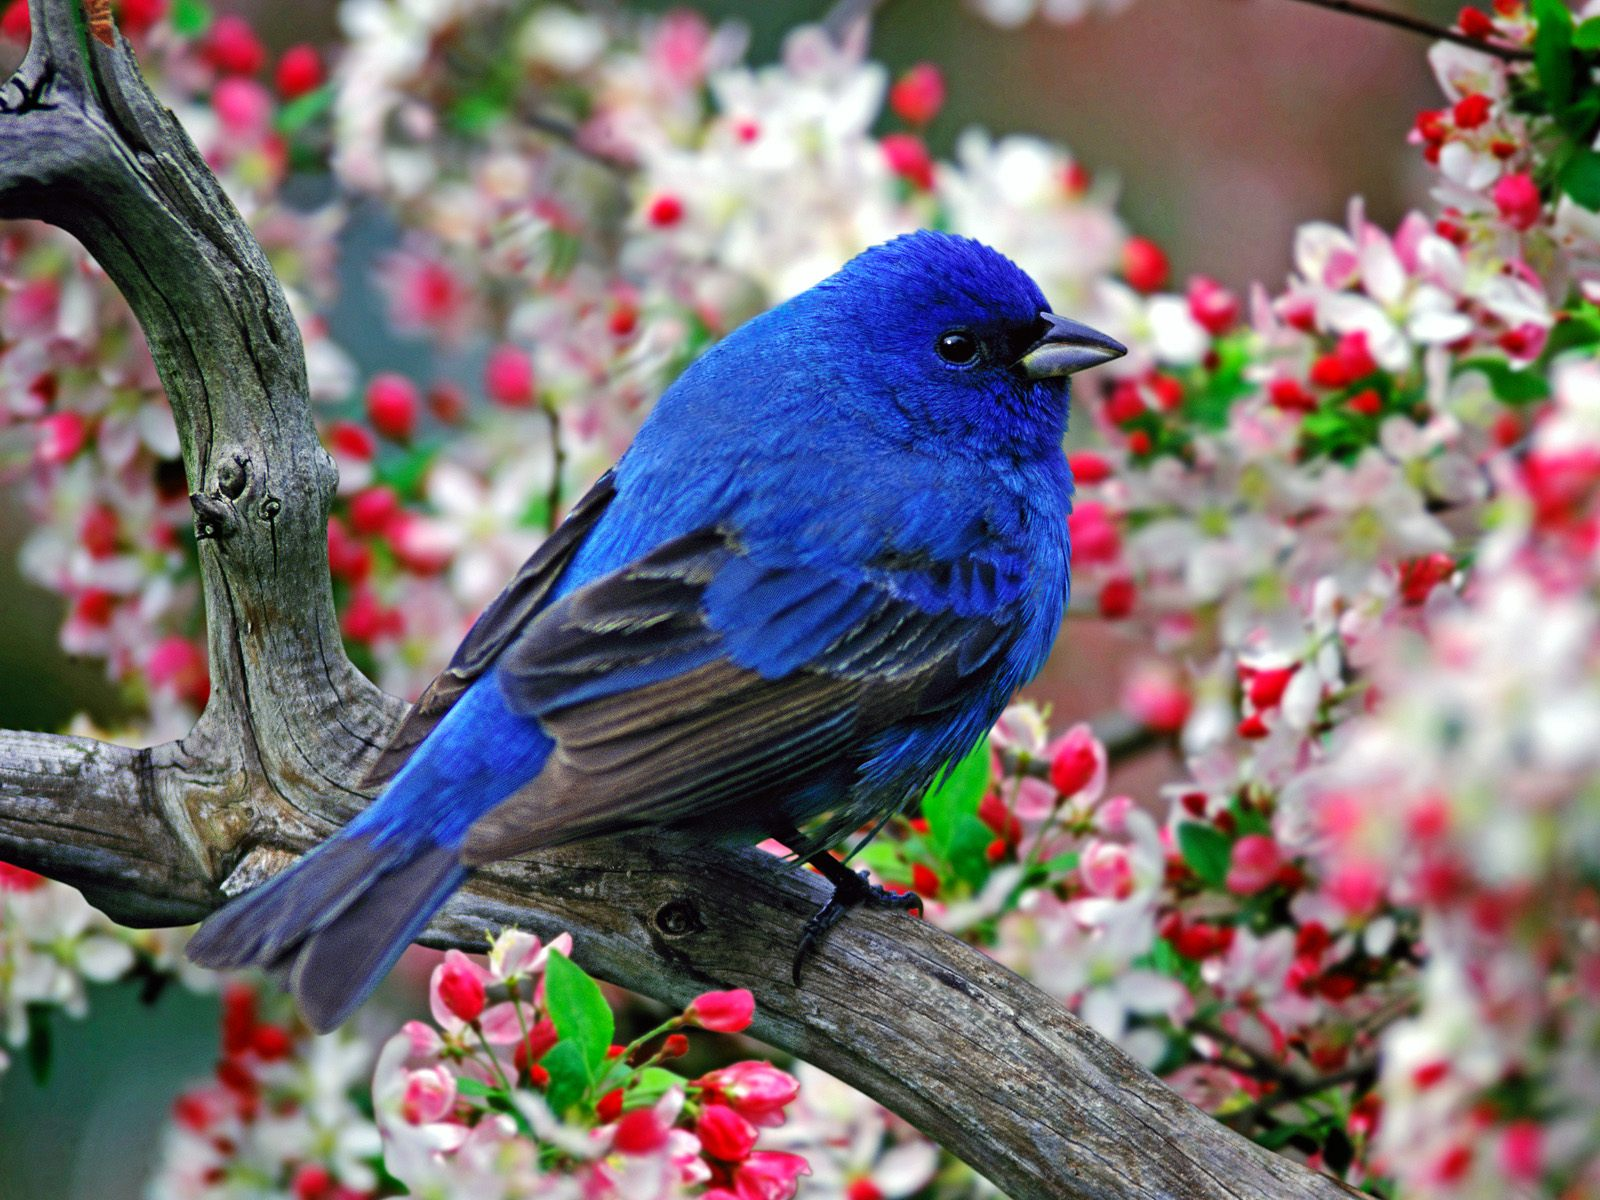 Blue bird wallpapers and images   wallpapers pictures photos 1600x1200